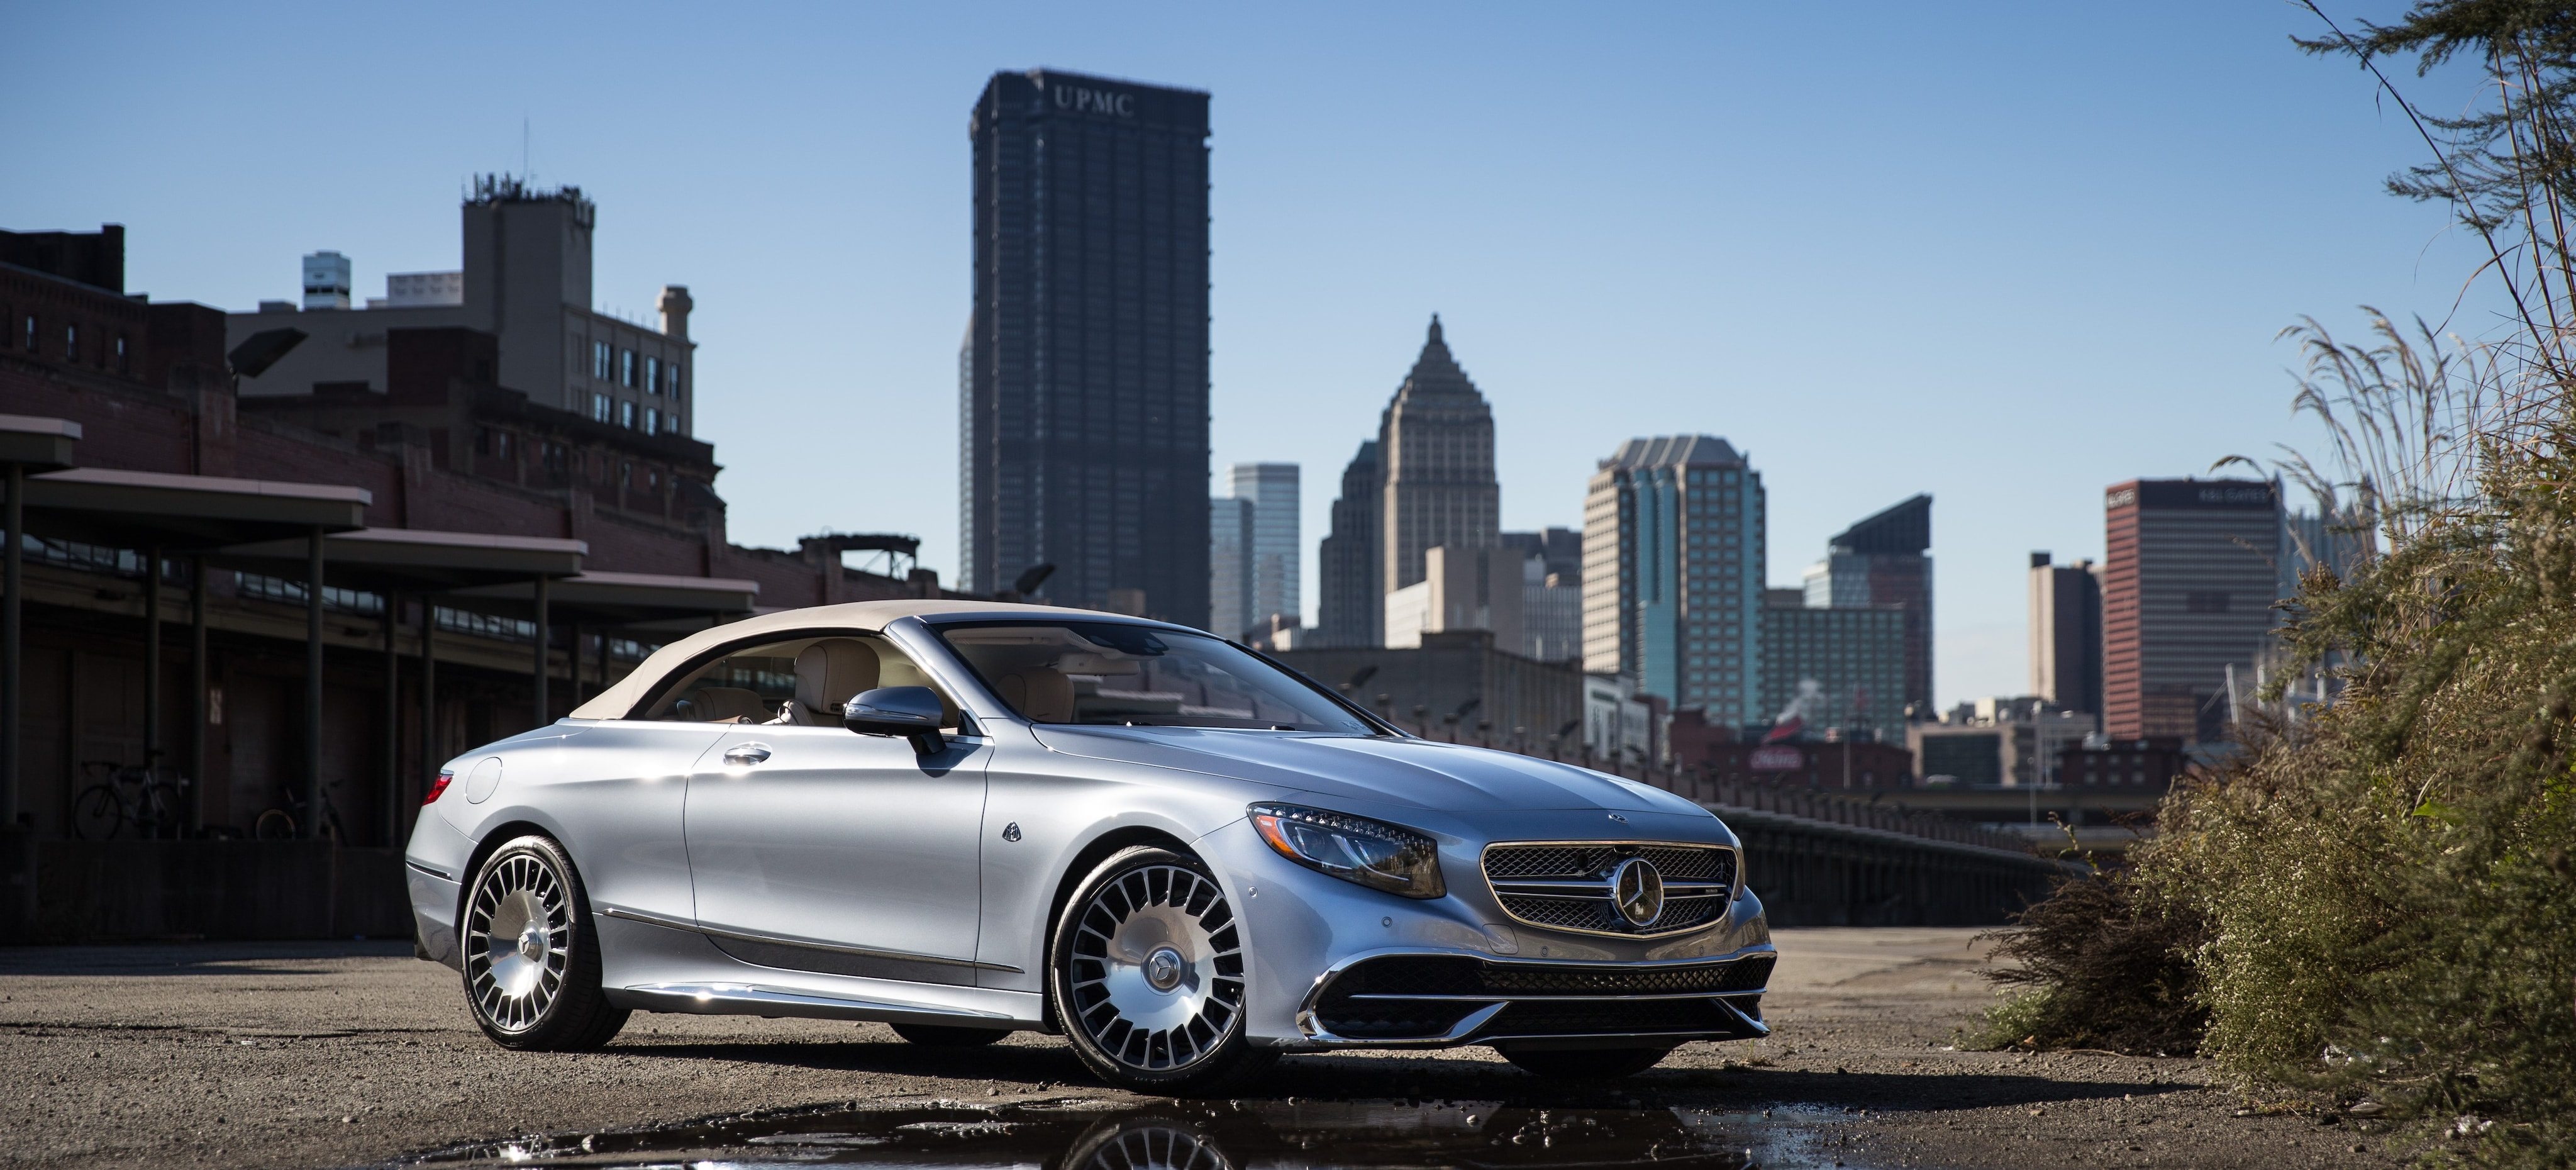 Mercedes-Benz Dealer near Me | Mercedes-Benz of Pittsburgh, PA